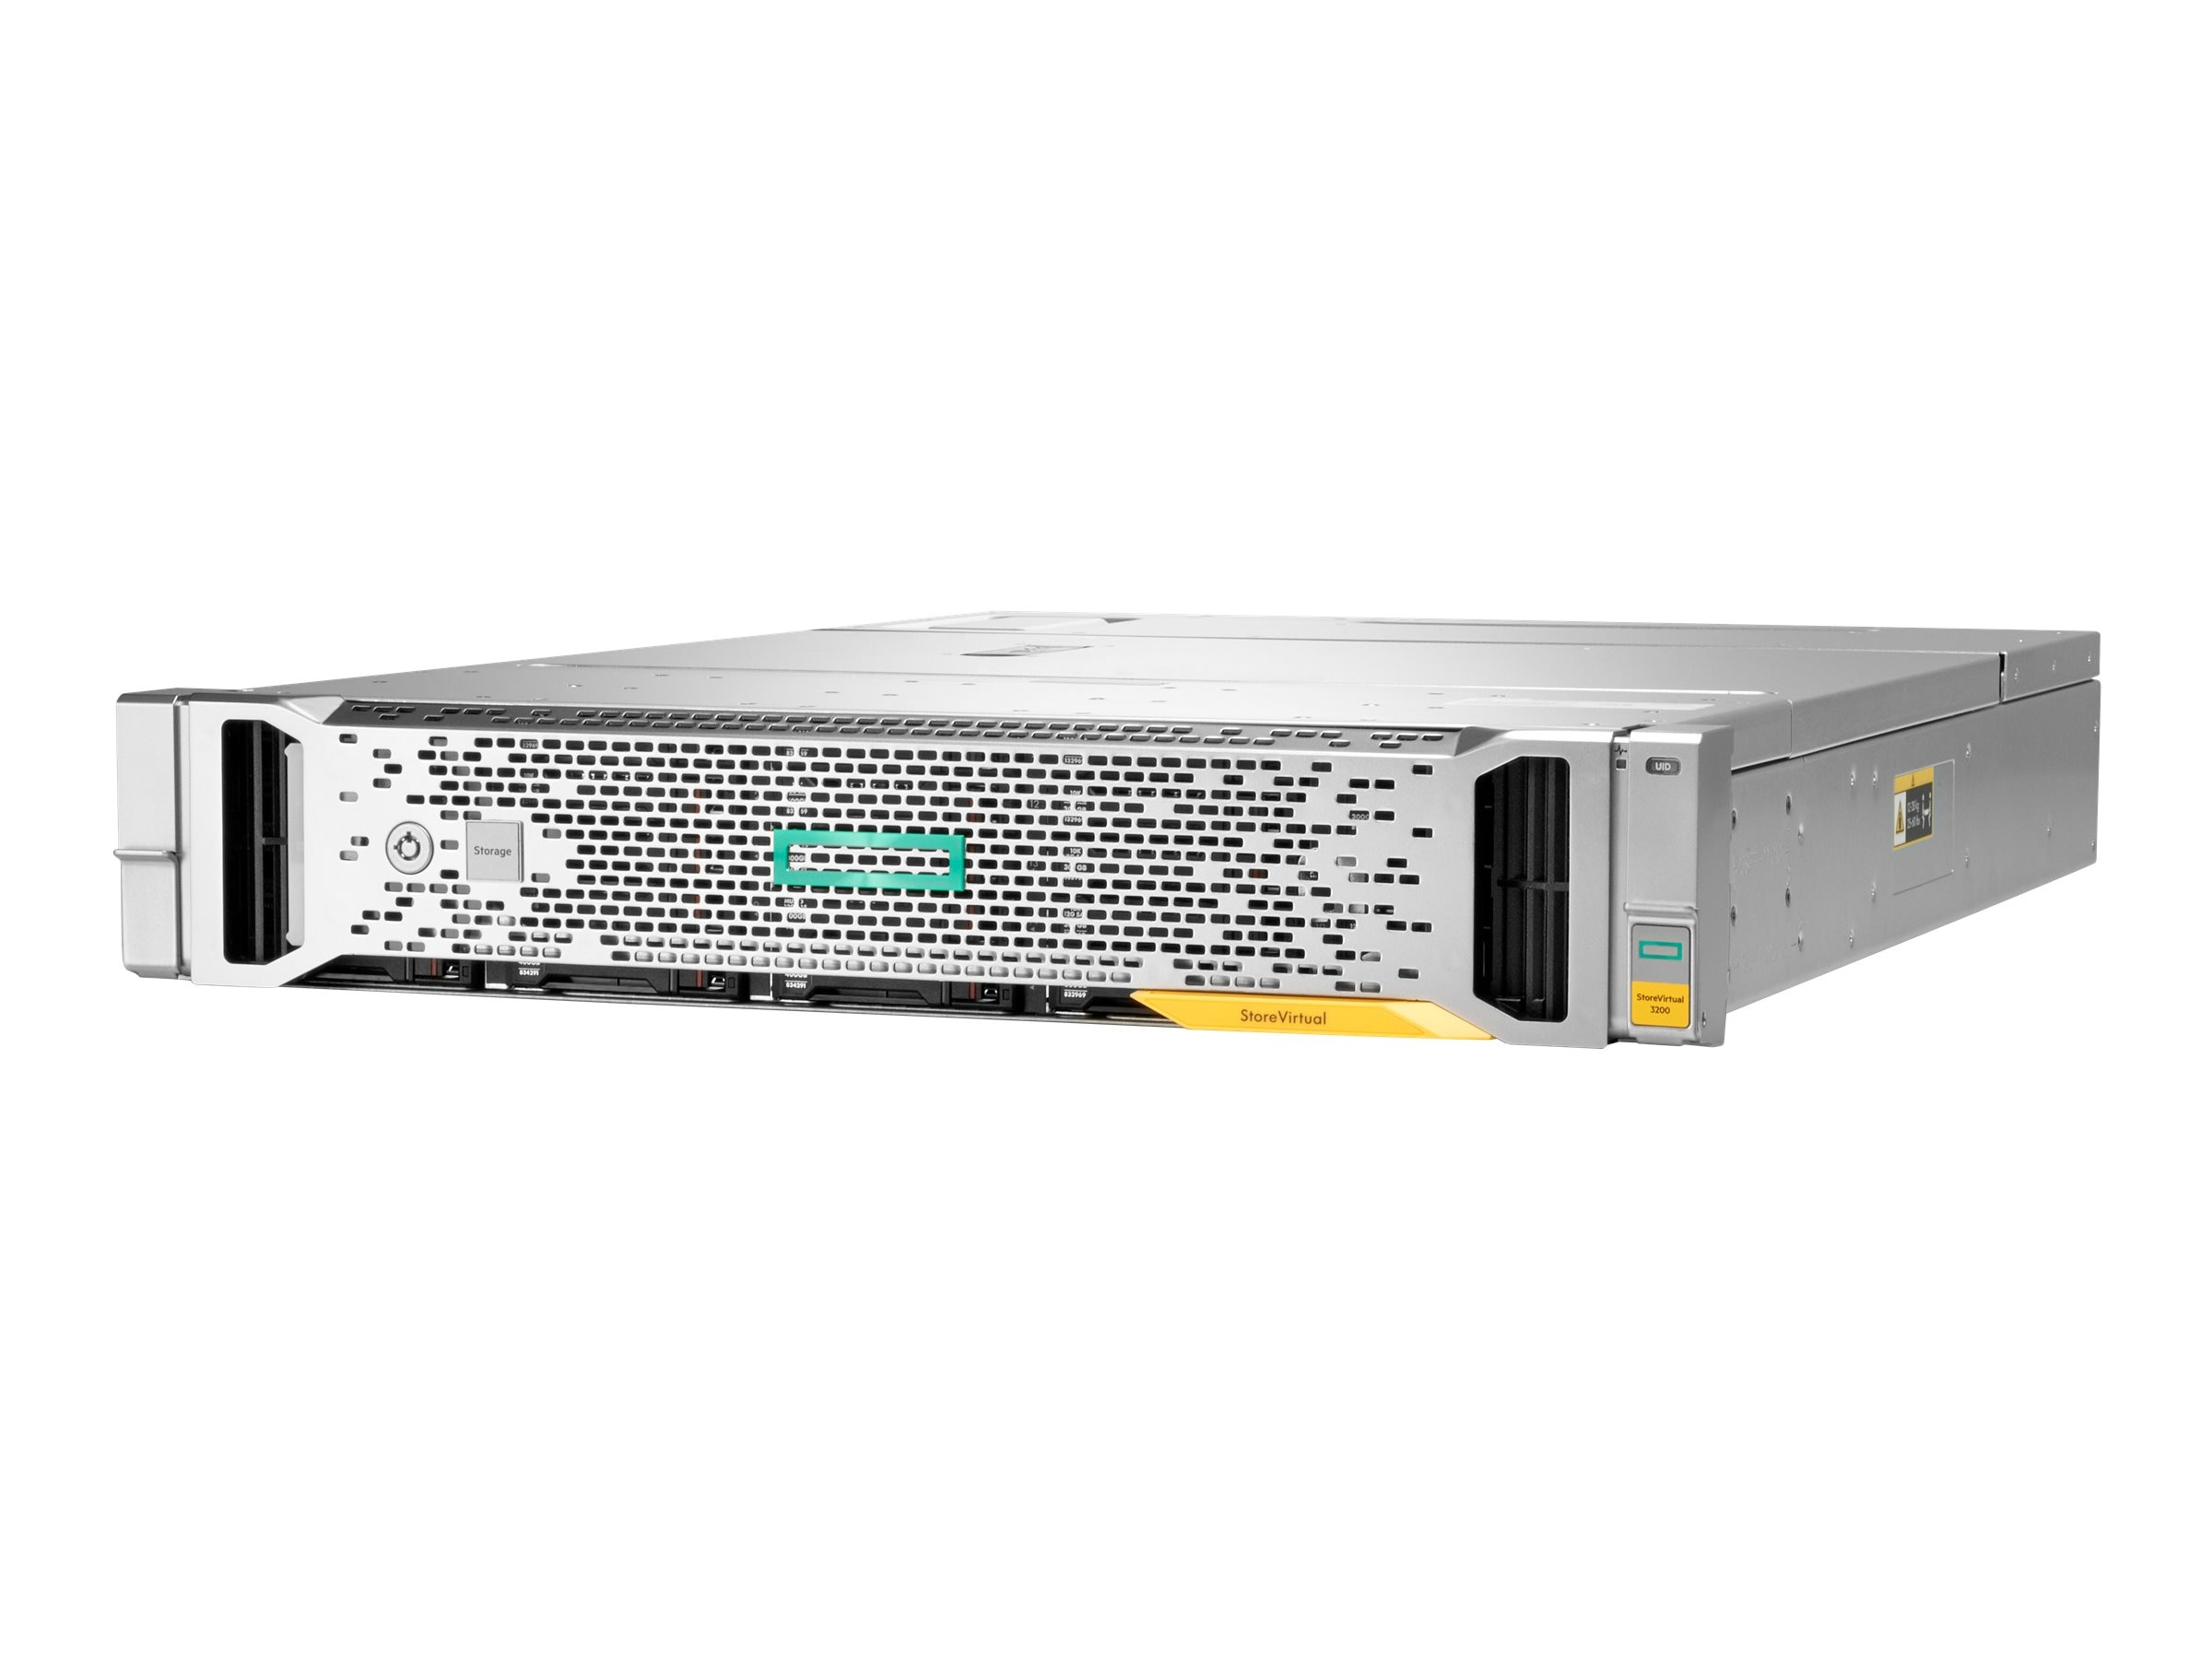 Hewlett Packard Enterprise N9X20A Image 1